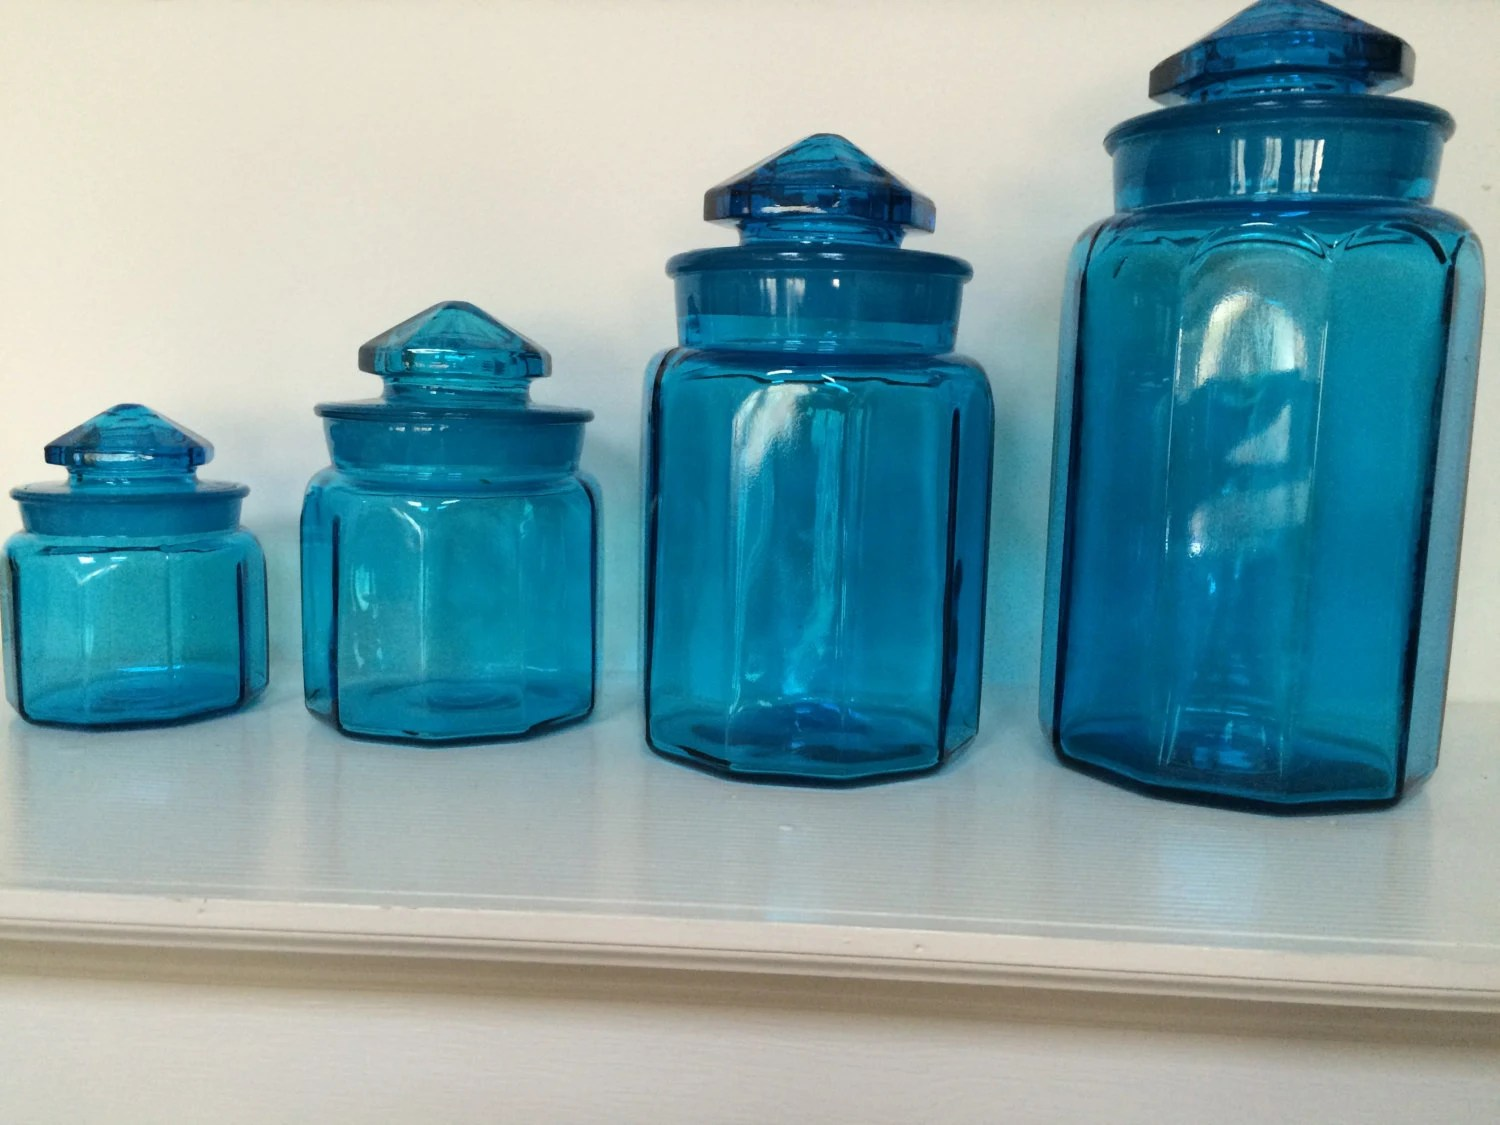 Ordinaire Turquoise Blue Glass Kitchen Canisters Apothecary Jars 10